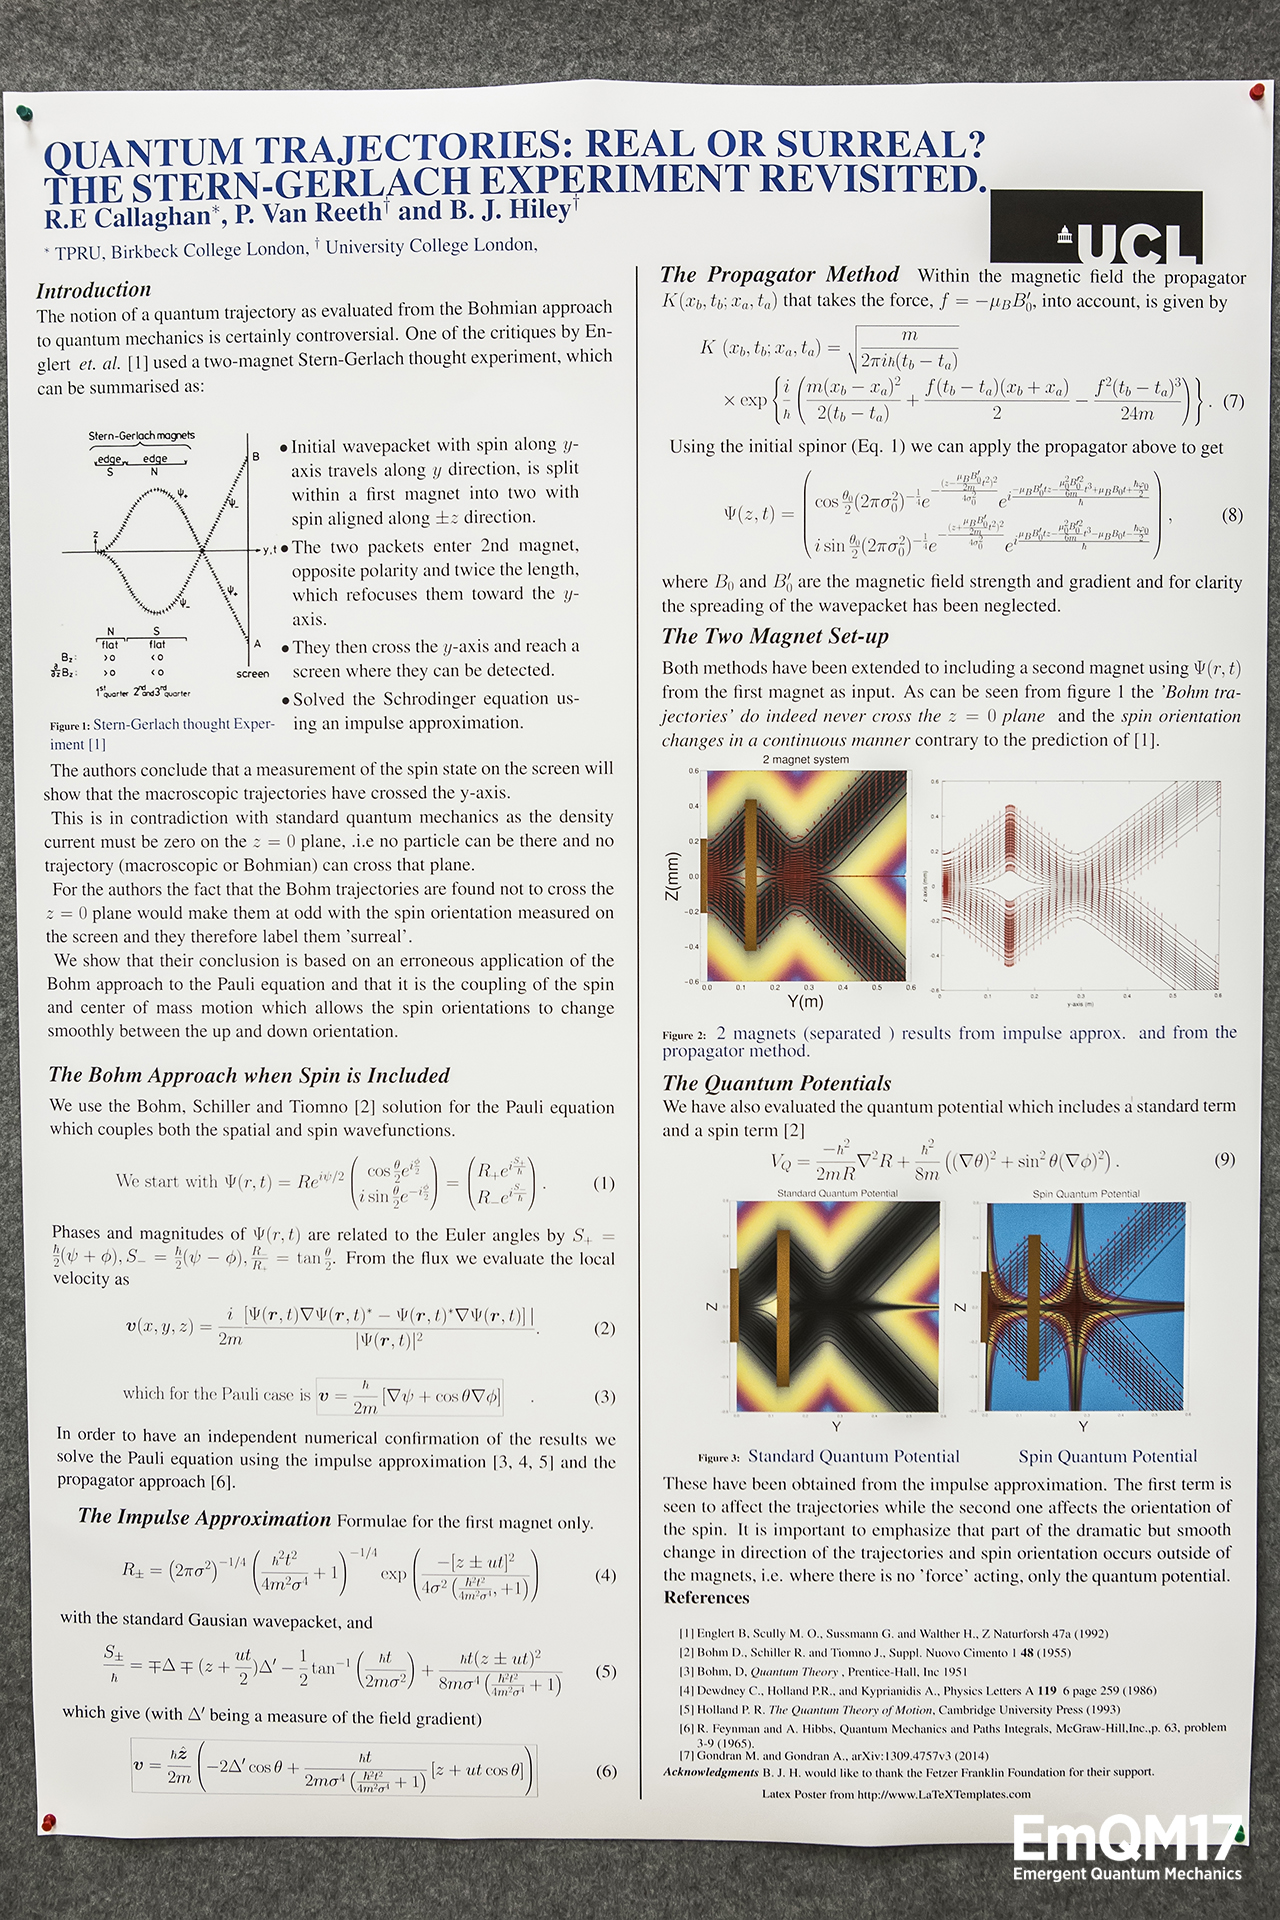 Quantum trajectories: real or surreal? the stern-gerlach experiment revisited by Callaghan